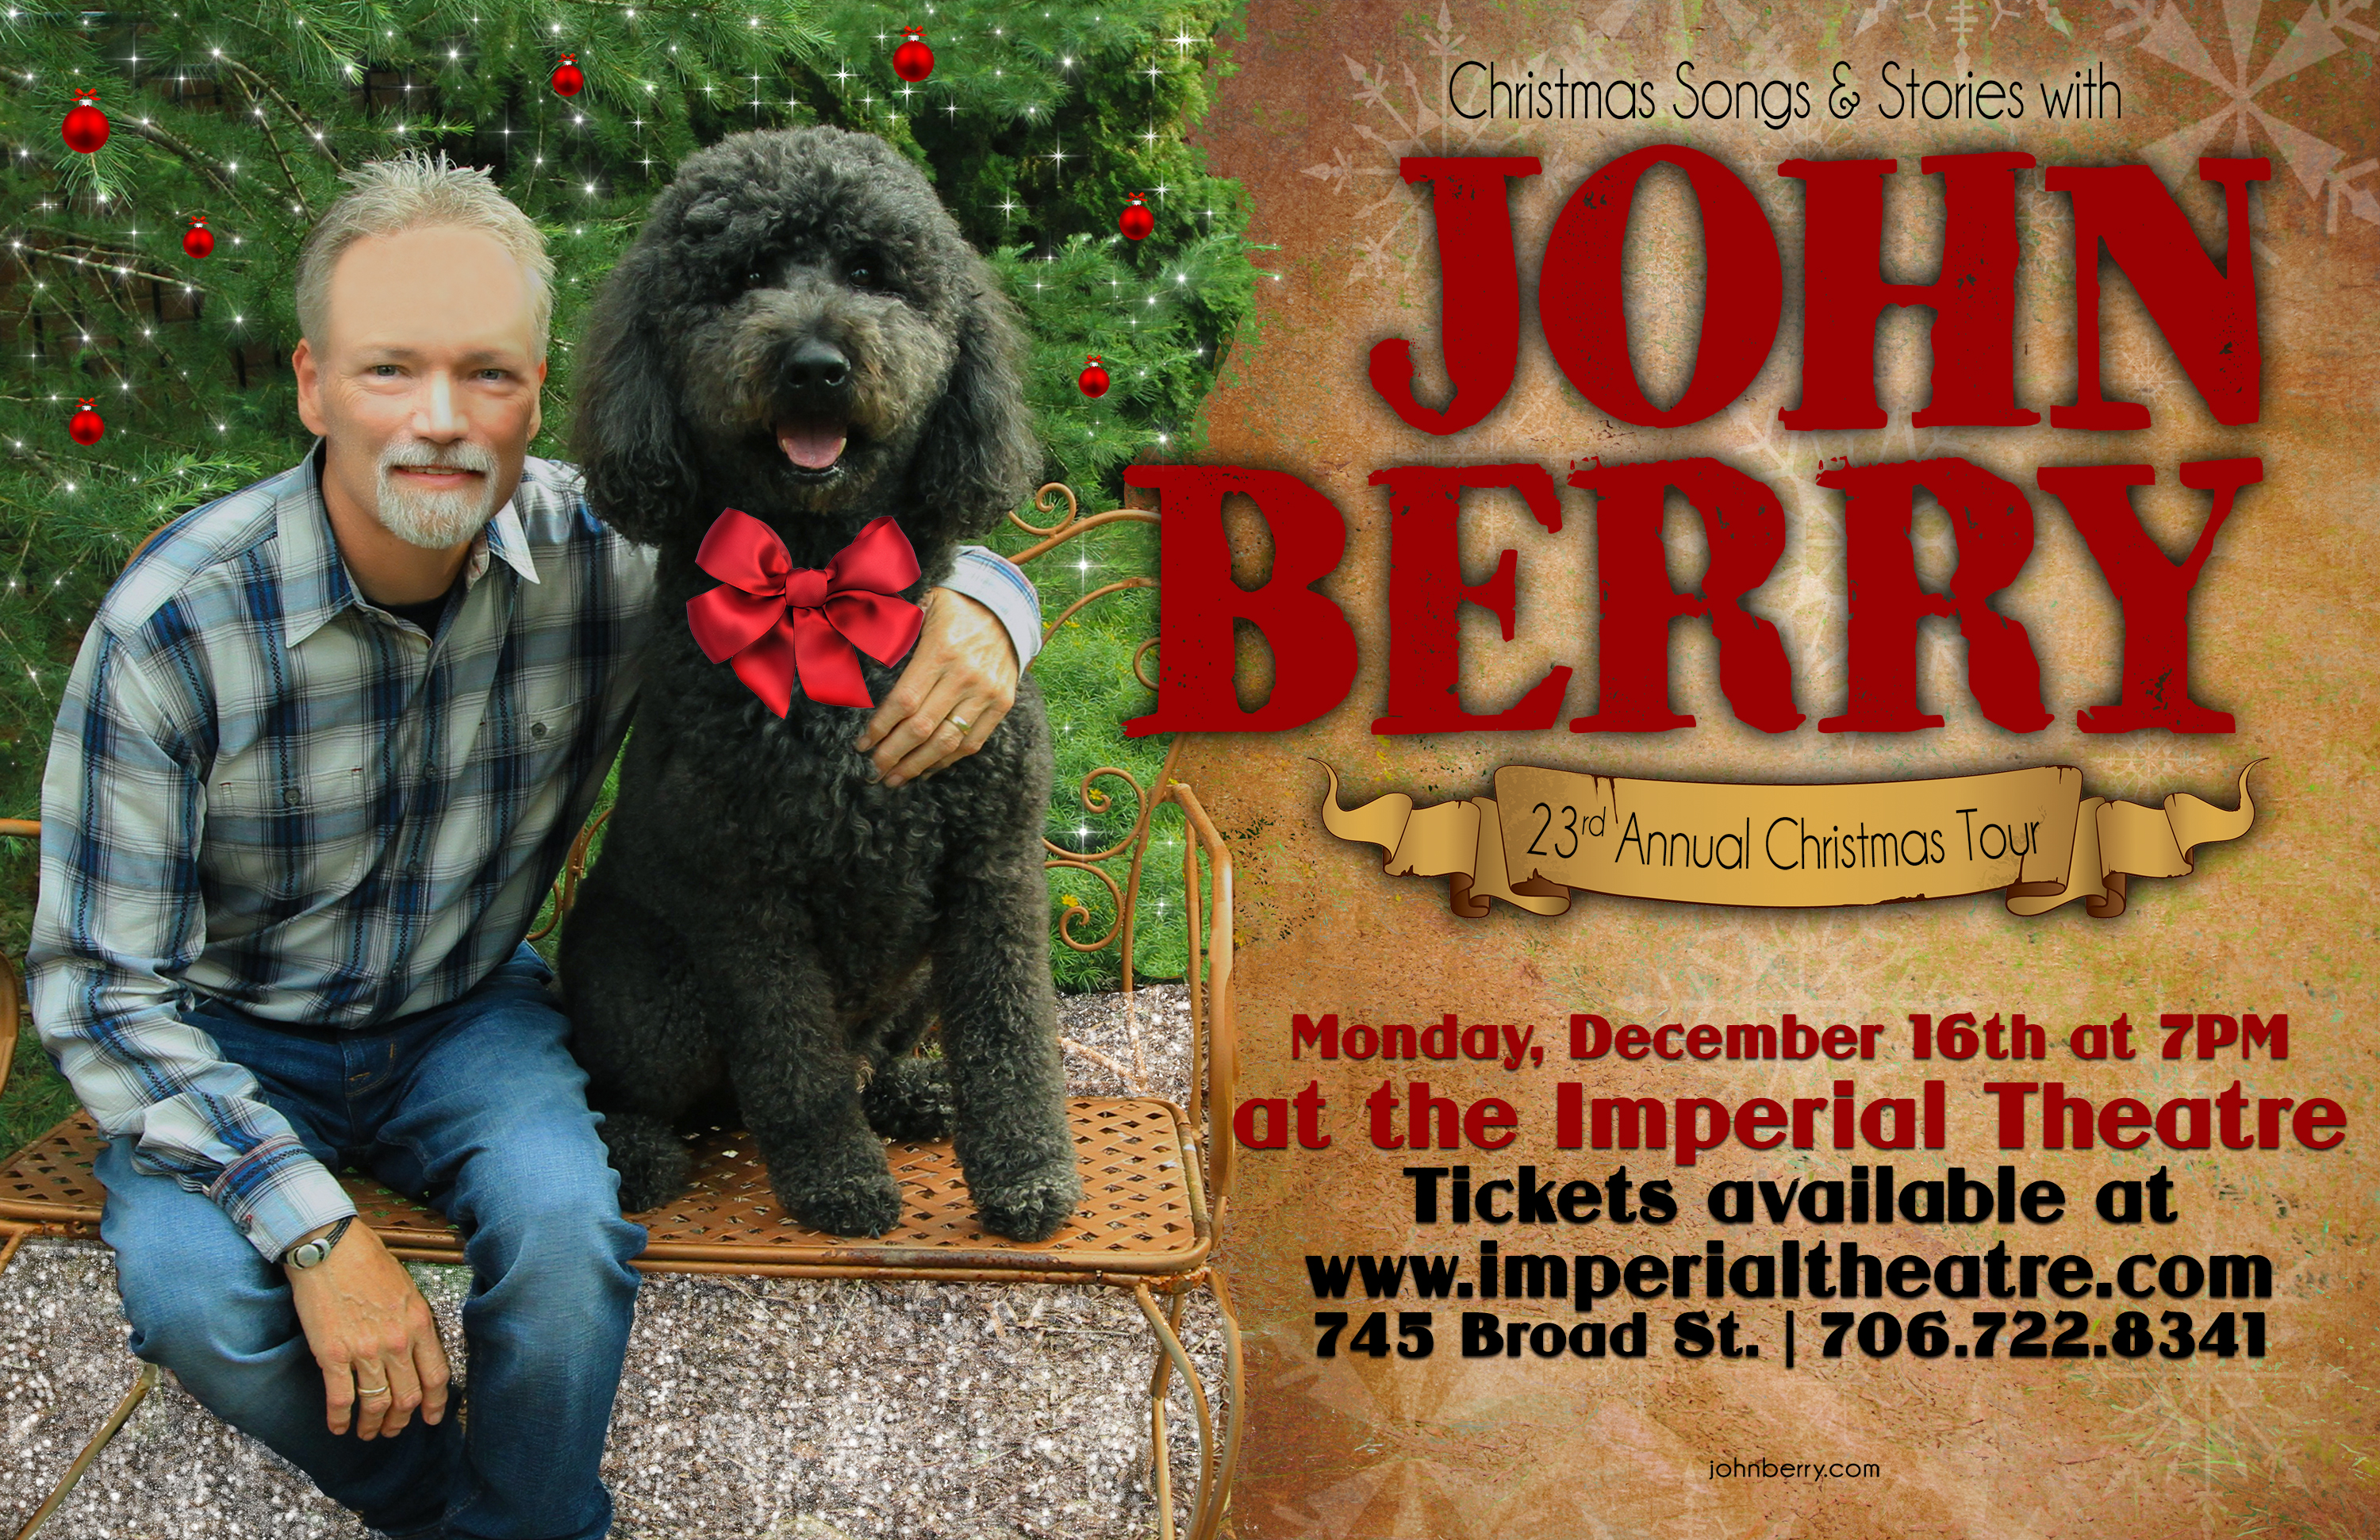 John Berry Christmas Tour 2019 23rd annual Christmas Songs and Stories with John Berry   Imperial